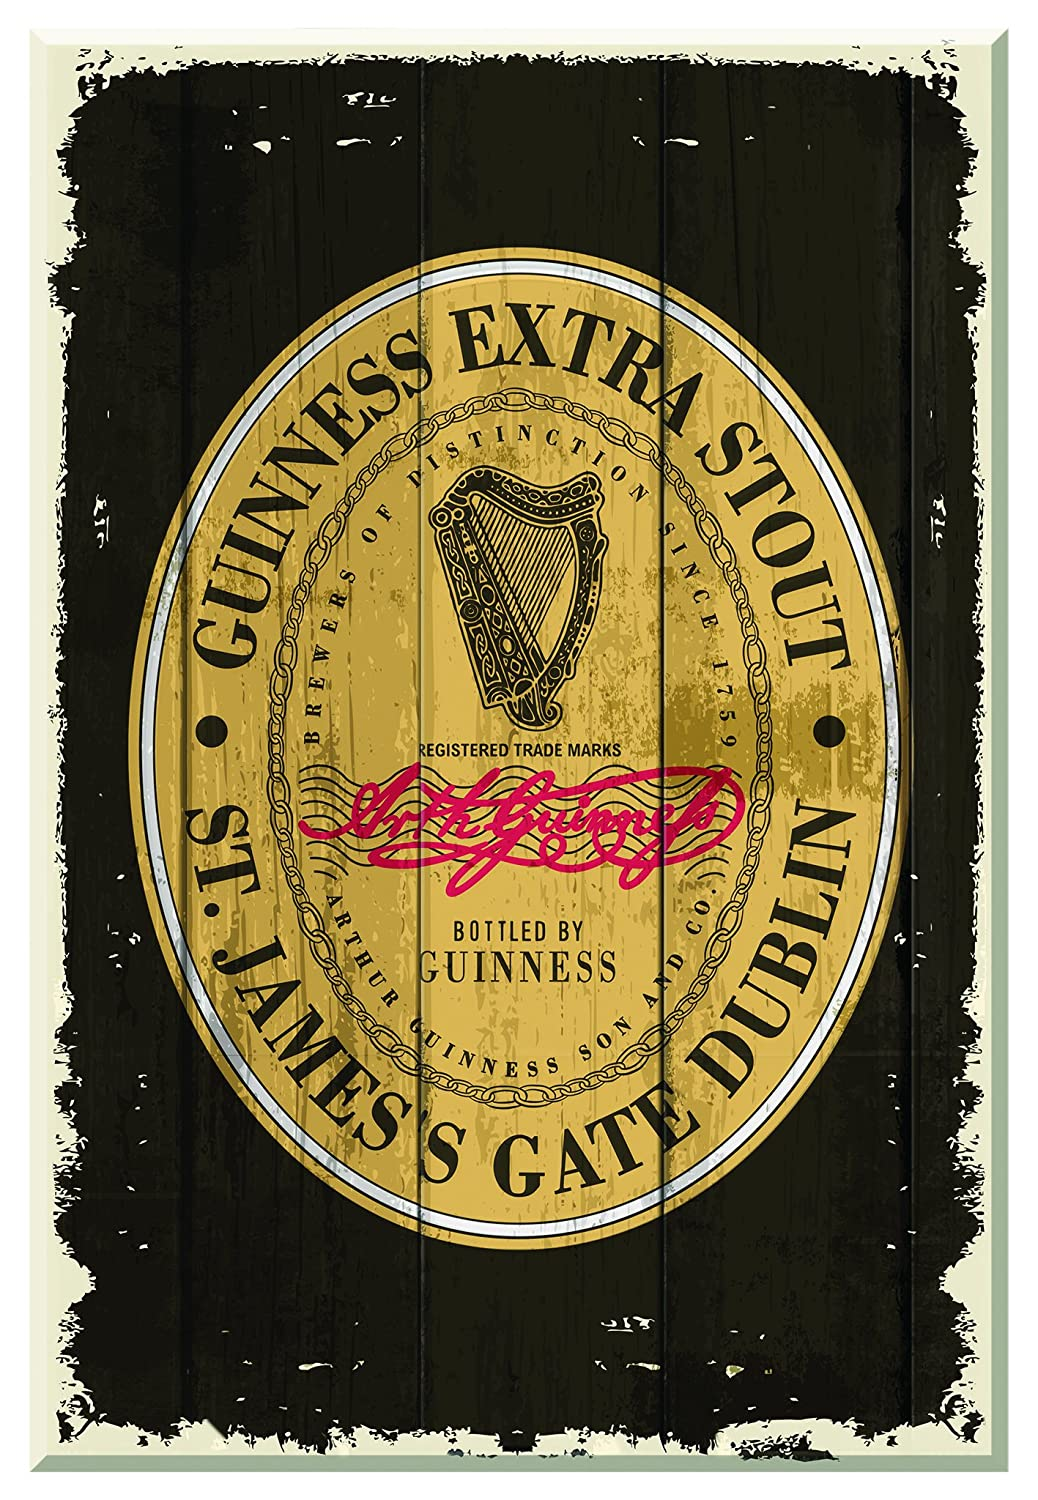 Nostalgic Guinness Wooden Sign With The Heritage Extra Stout Label GNS5456